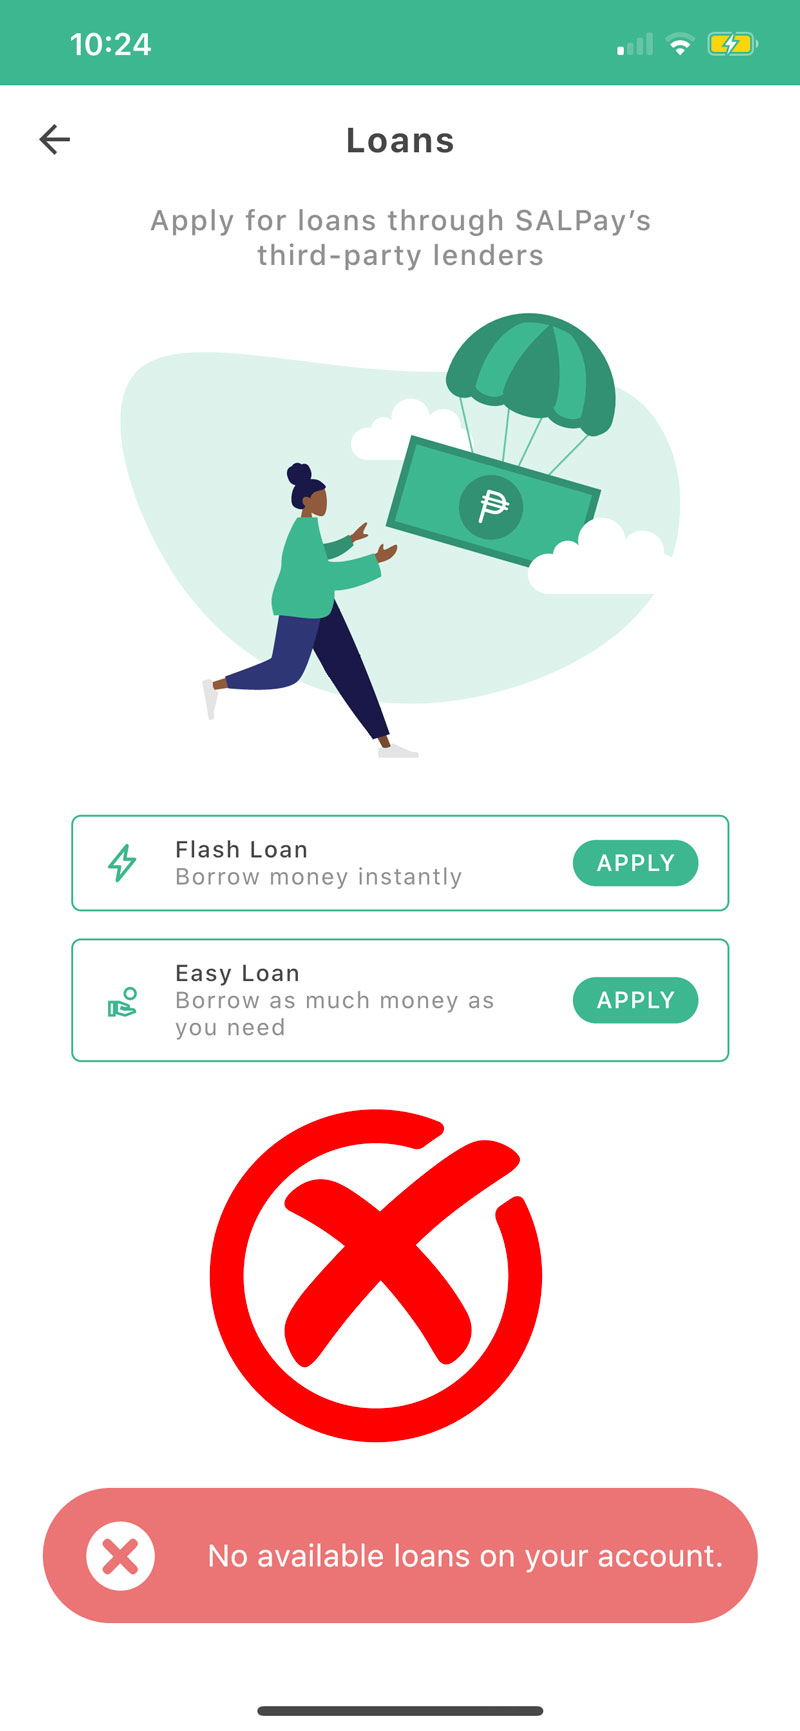 salpay loans not qualify